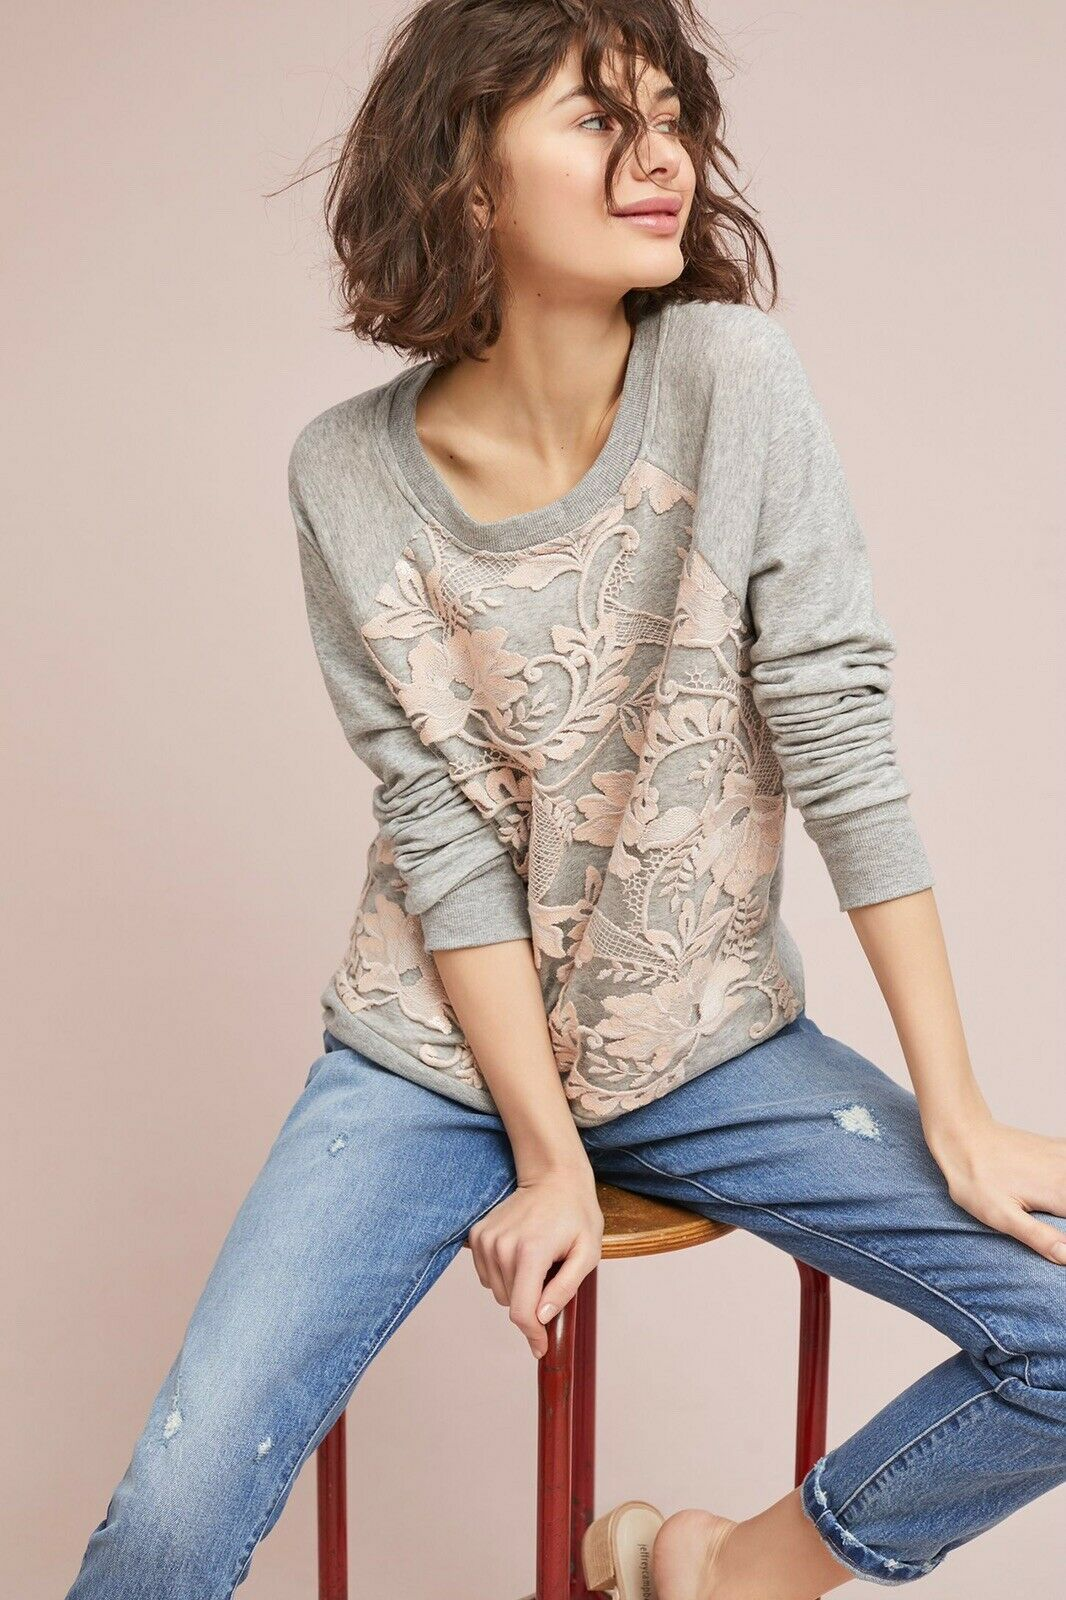 ANTHROPOLOGIE NWT EVA FRANCO Manor SWEATSHIRT Sz. L grau with Rosa LACE top